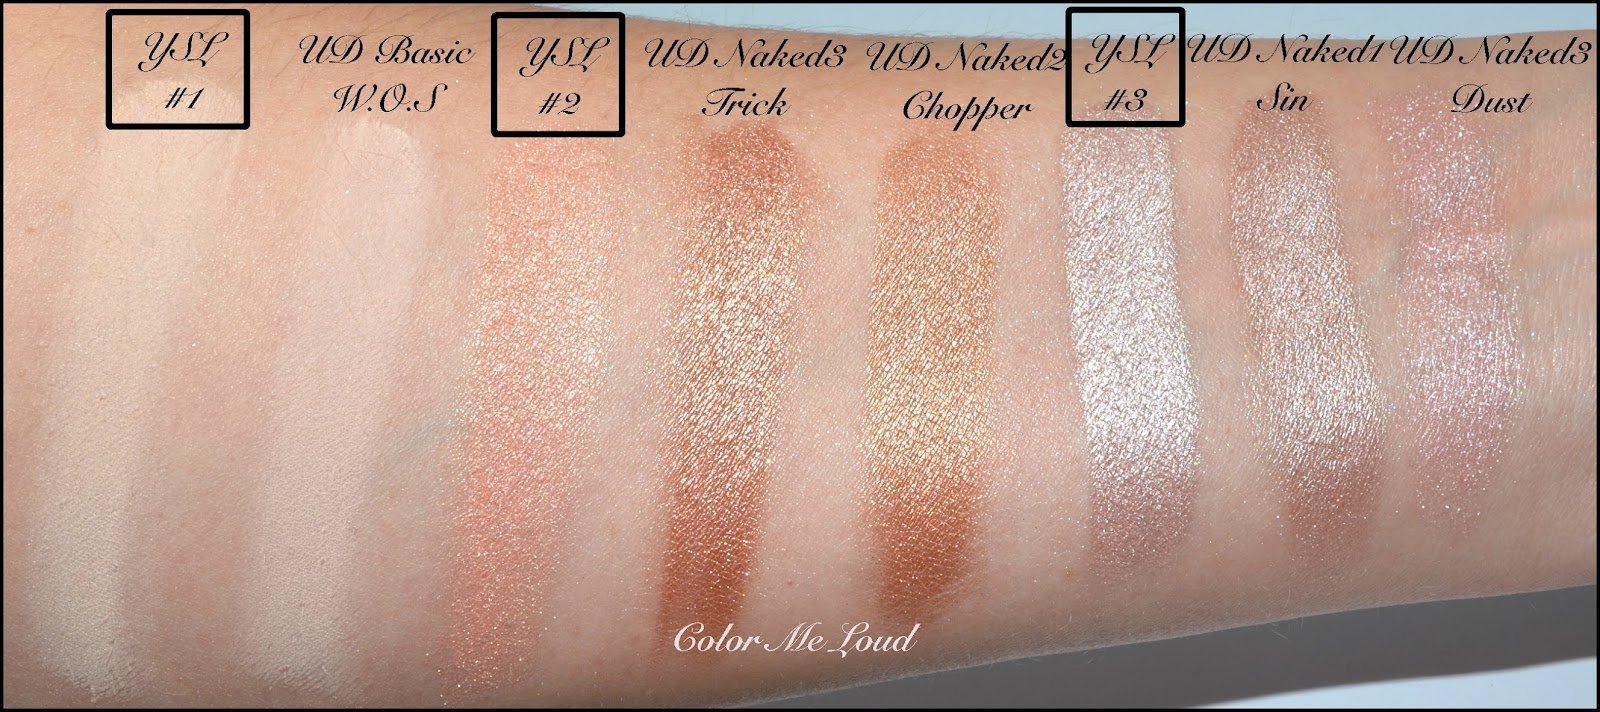 Ysl couture variation 10 color eye palette 1 nu review swatch ysl couture variation 10 color eye palette 1 nu vs urban decay naked 123 basic 12 ccuart Gallery